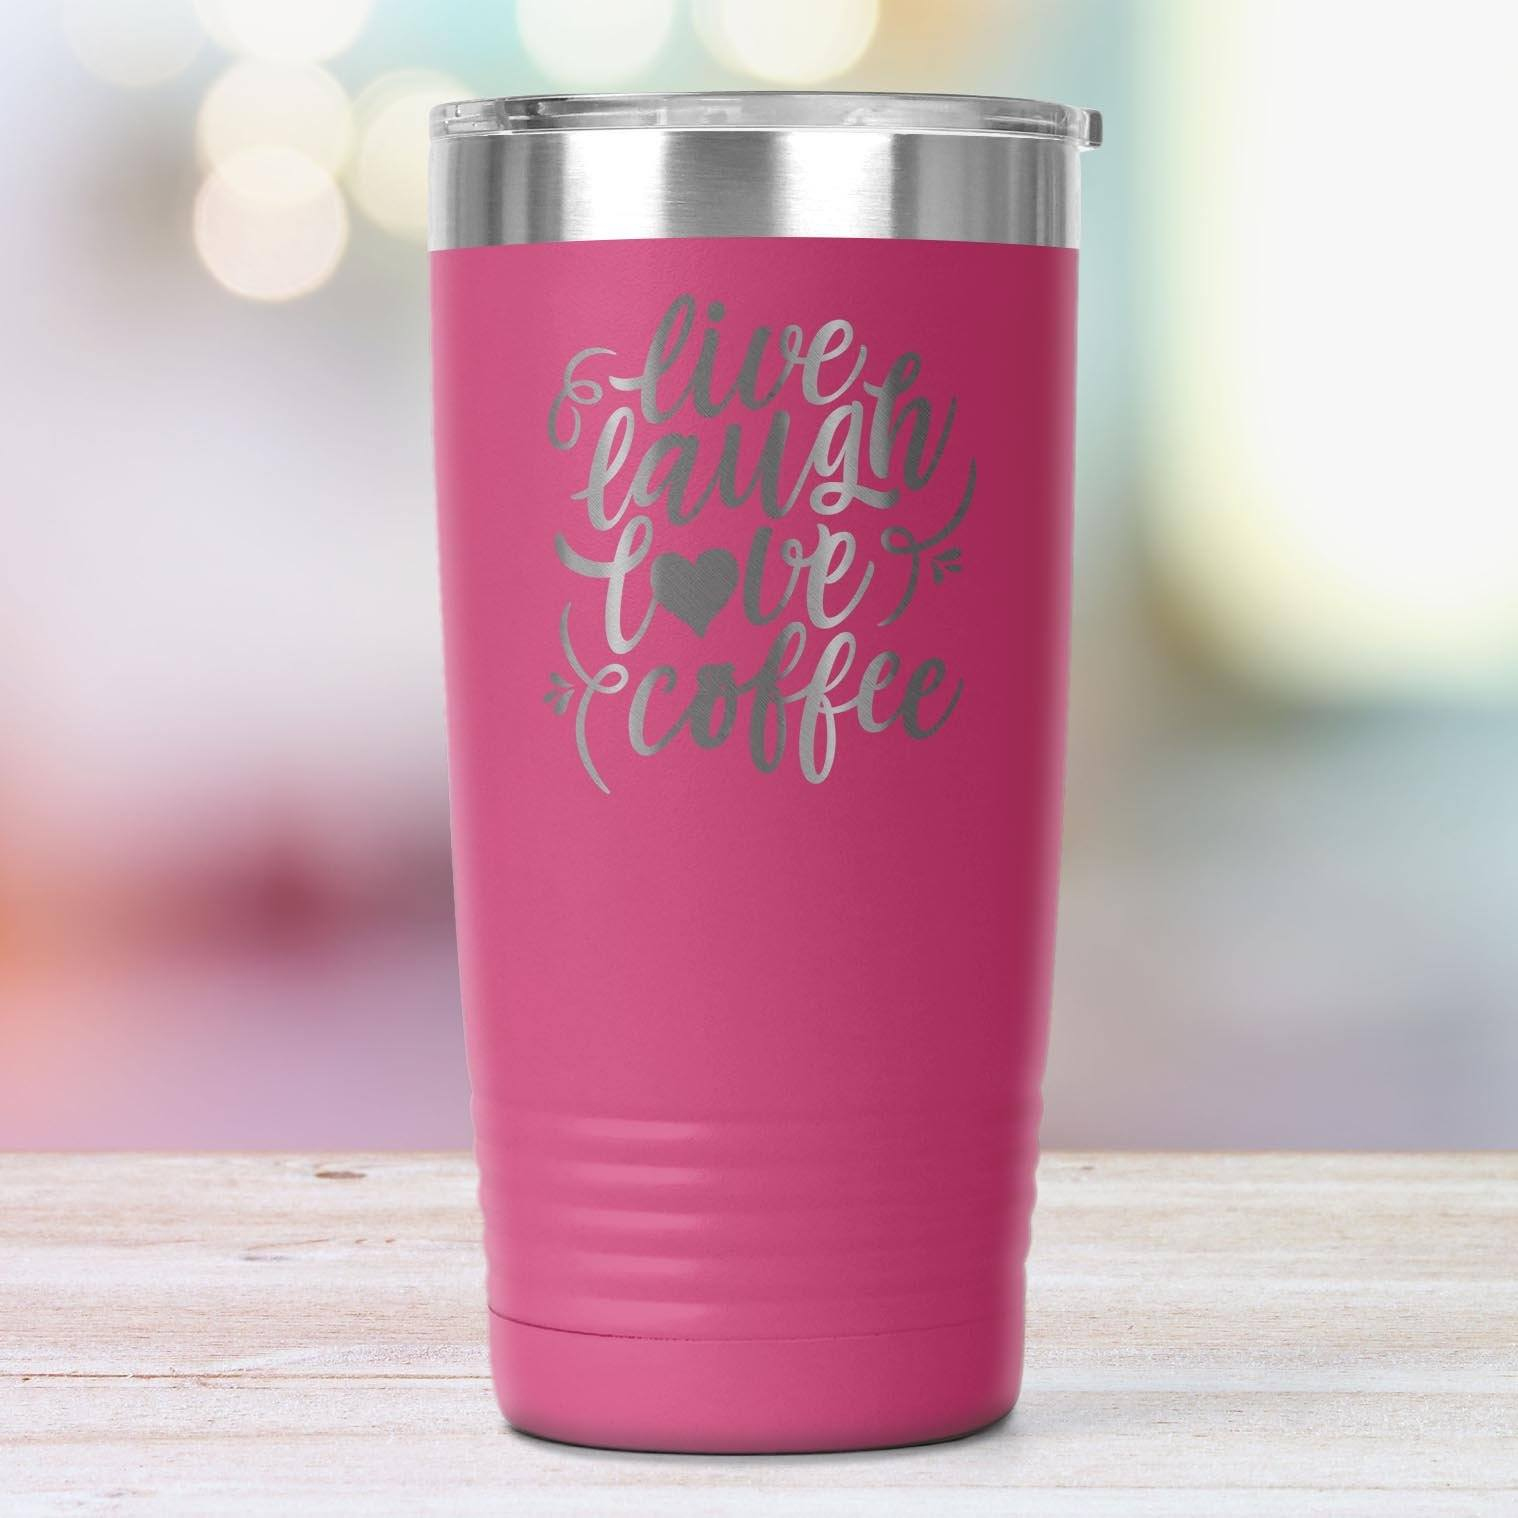 Live, Laugh, Love, Coffee • 15oz Insulated Coffee Tumbler Tumblers teelaunch Pink